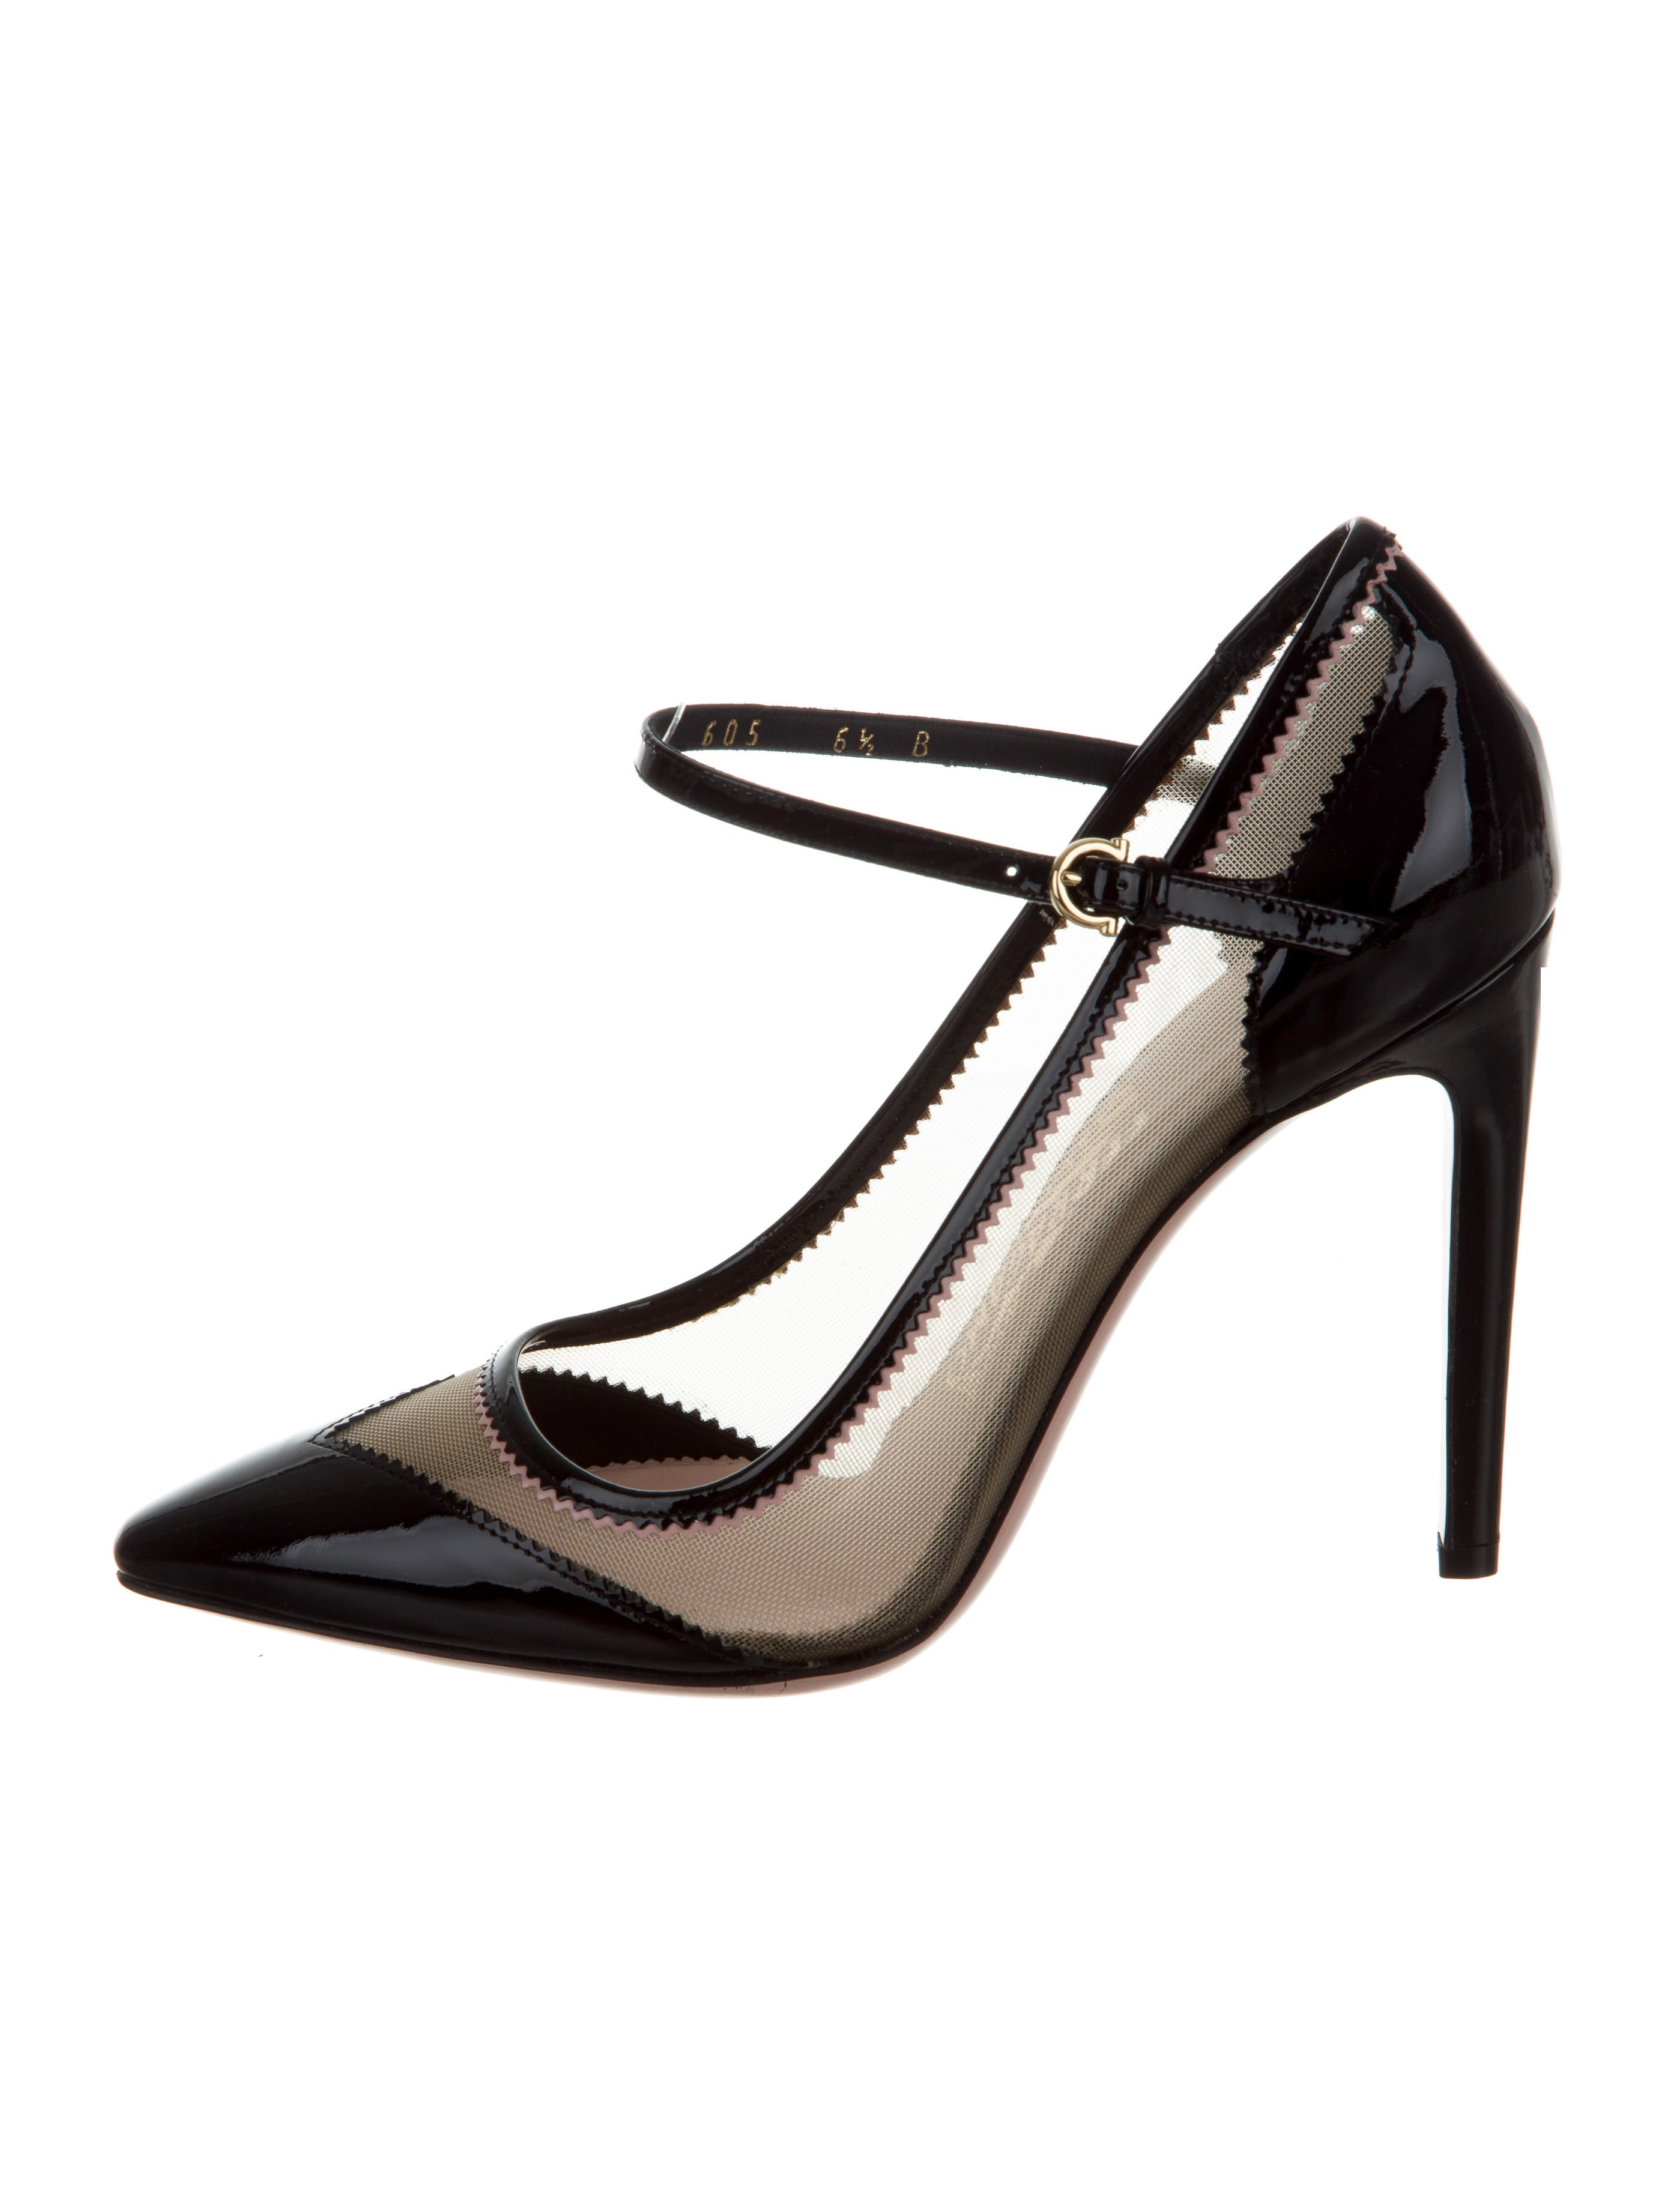 Salvatore Ferragamo Embellished Pointed-Toe Pumps outlet cheap price hsoql